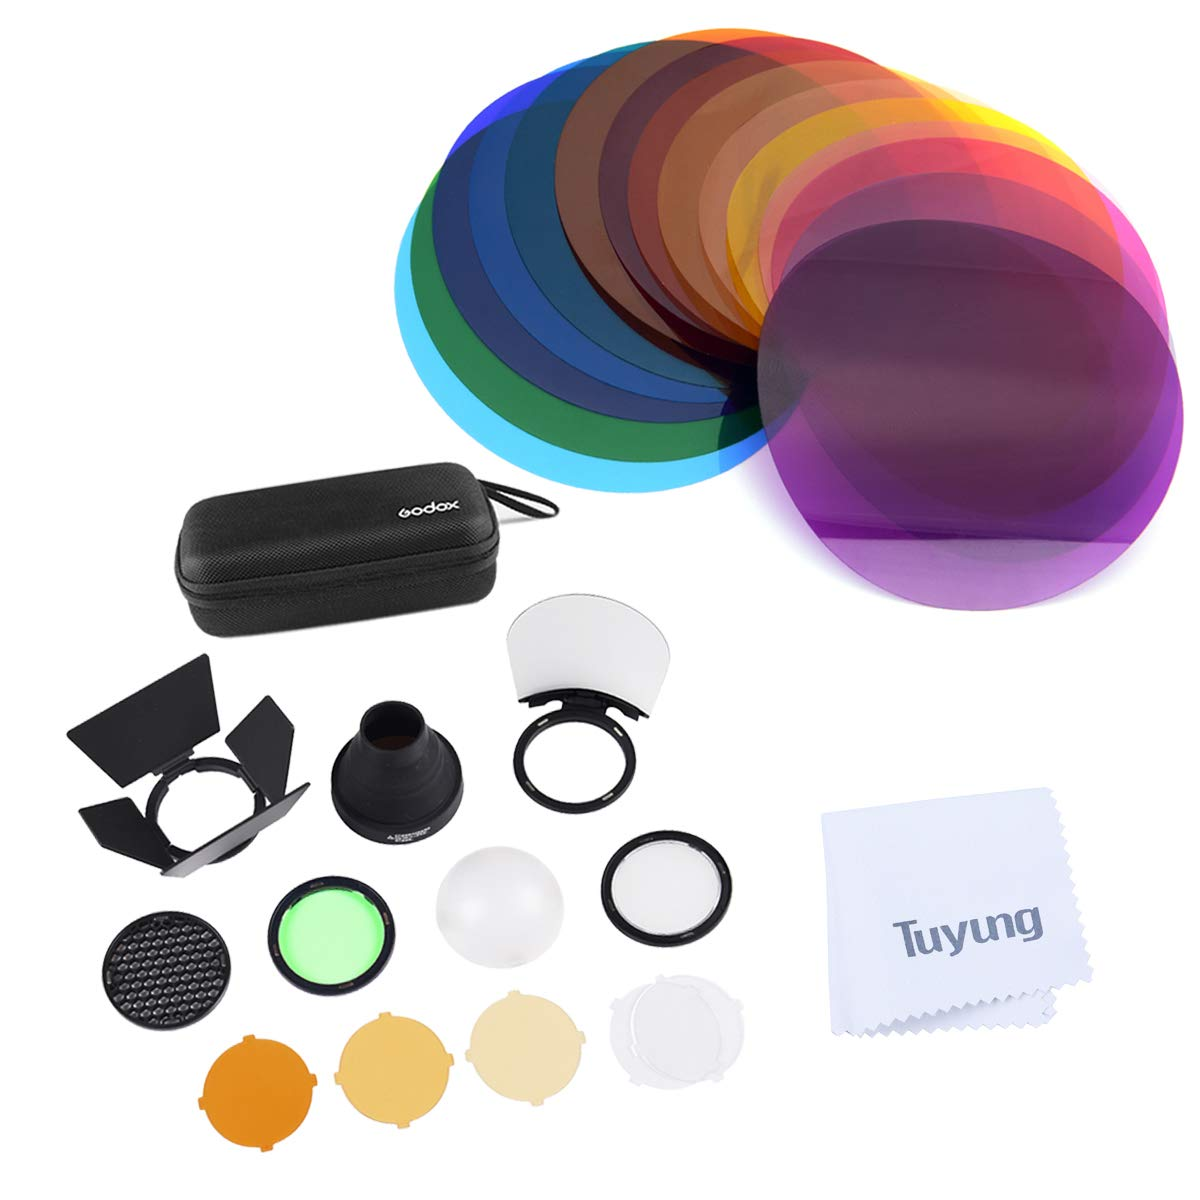 Godox V-11C Color Filters with godox AK-R1 Accessories Kit Set Compatible with Godox V1-C V1-N V1-S V1-O V1-F etc. Round Head Flash, use H200R Compatible with AD200 AD200PRO by Godox